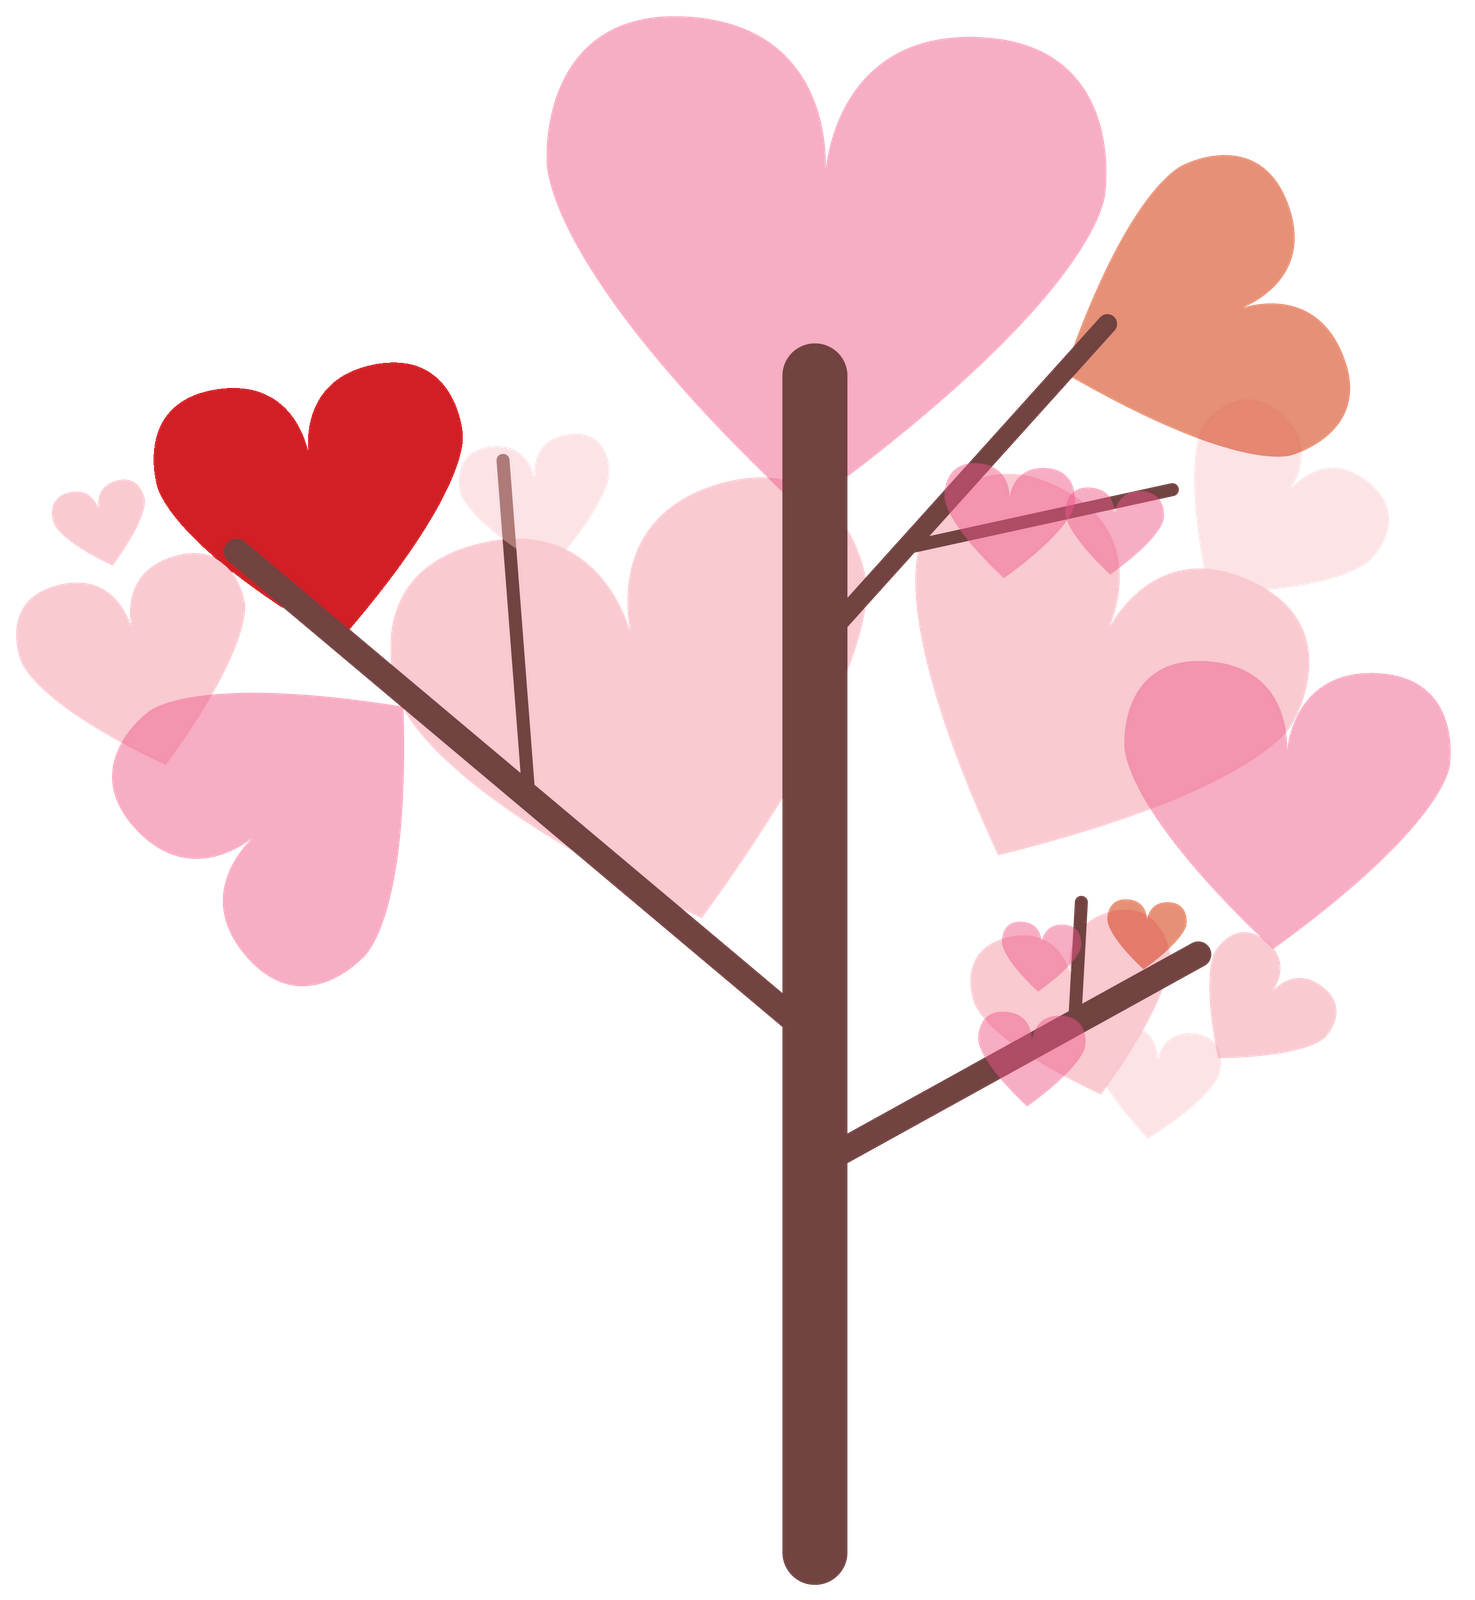 Tag love clipart clipart pictures-Tag love clipart clipart pictures-3